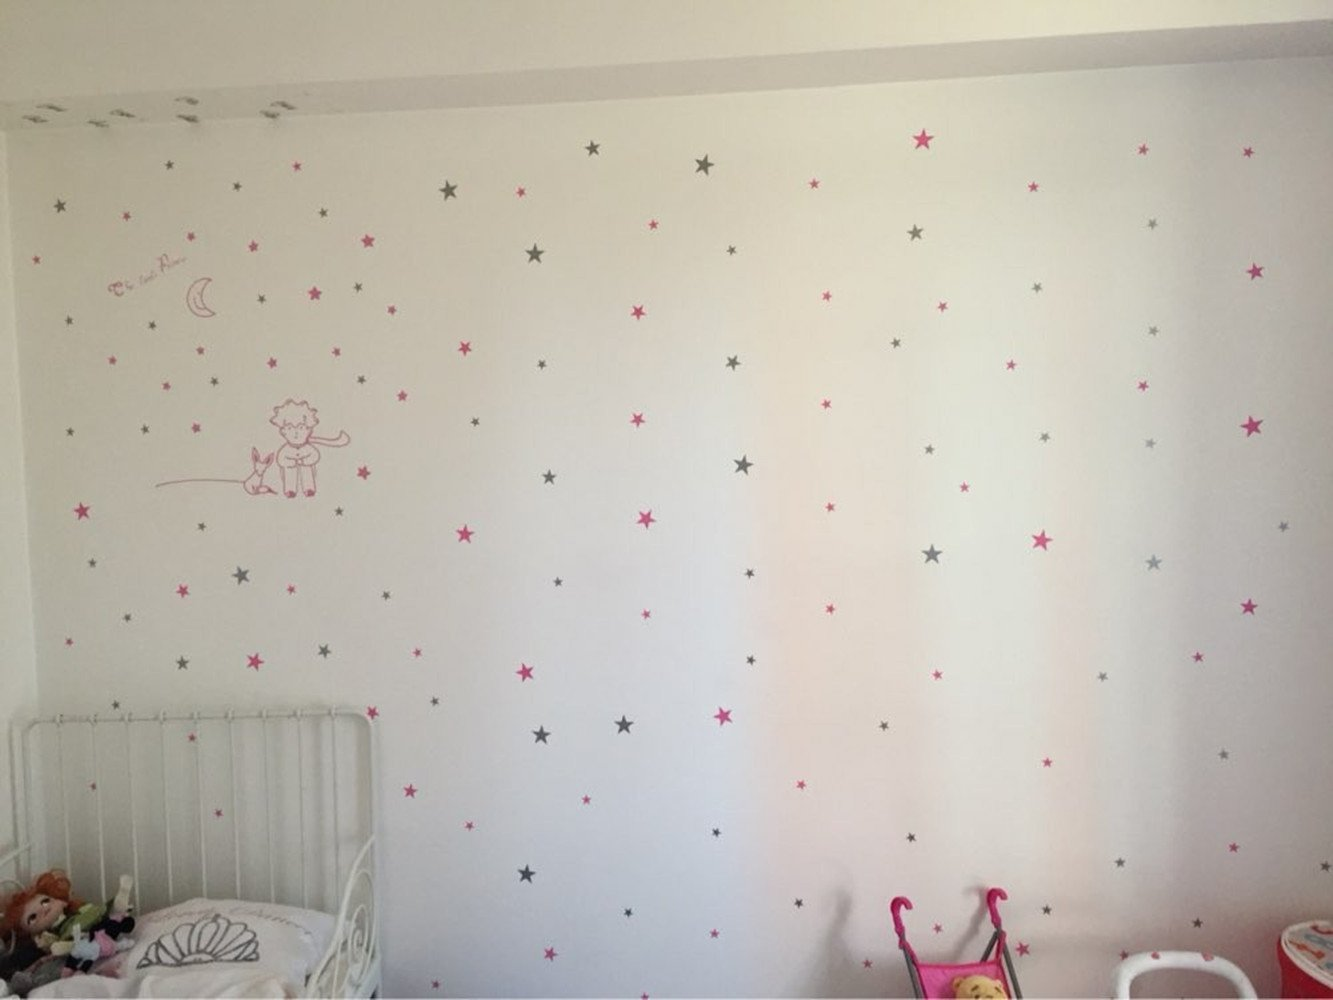 Wall Stickers Wall Decals Color Star Nursery Rooms Children Rooms Wall Arts (Gold) WDA